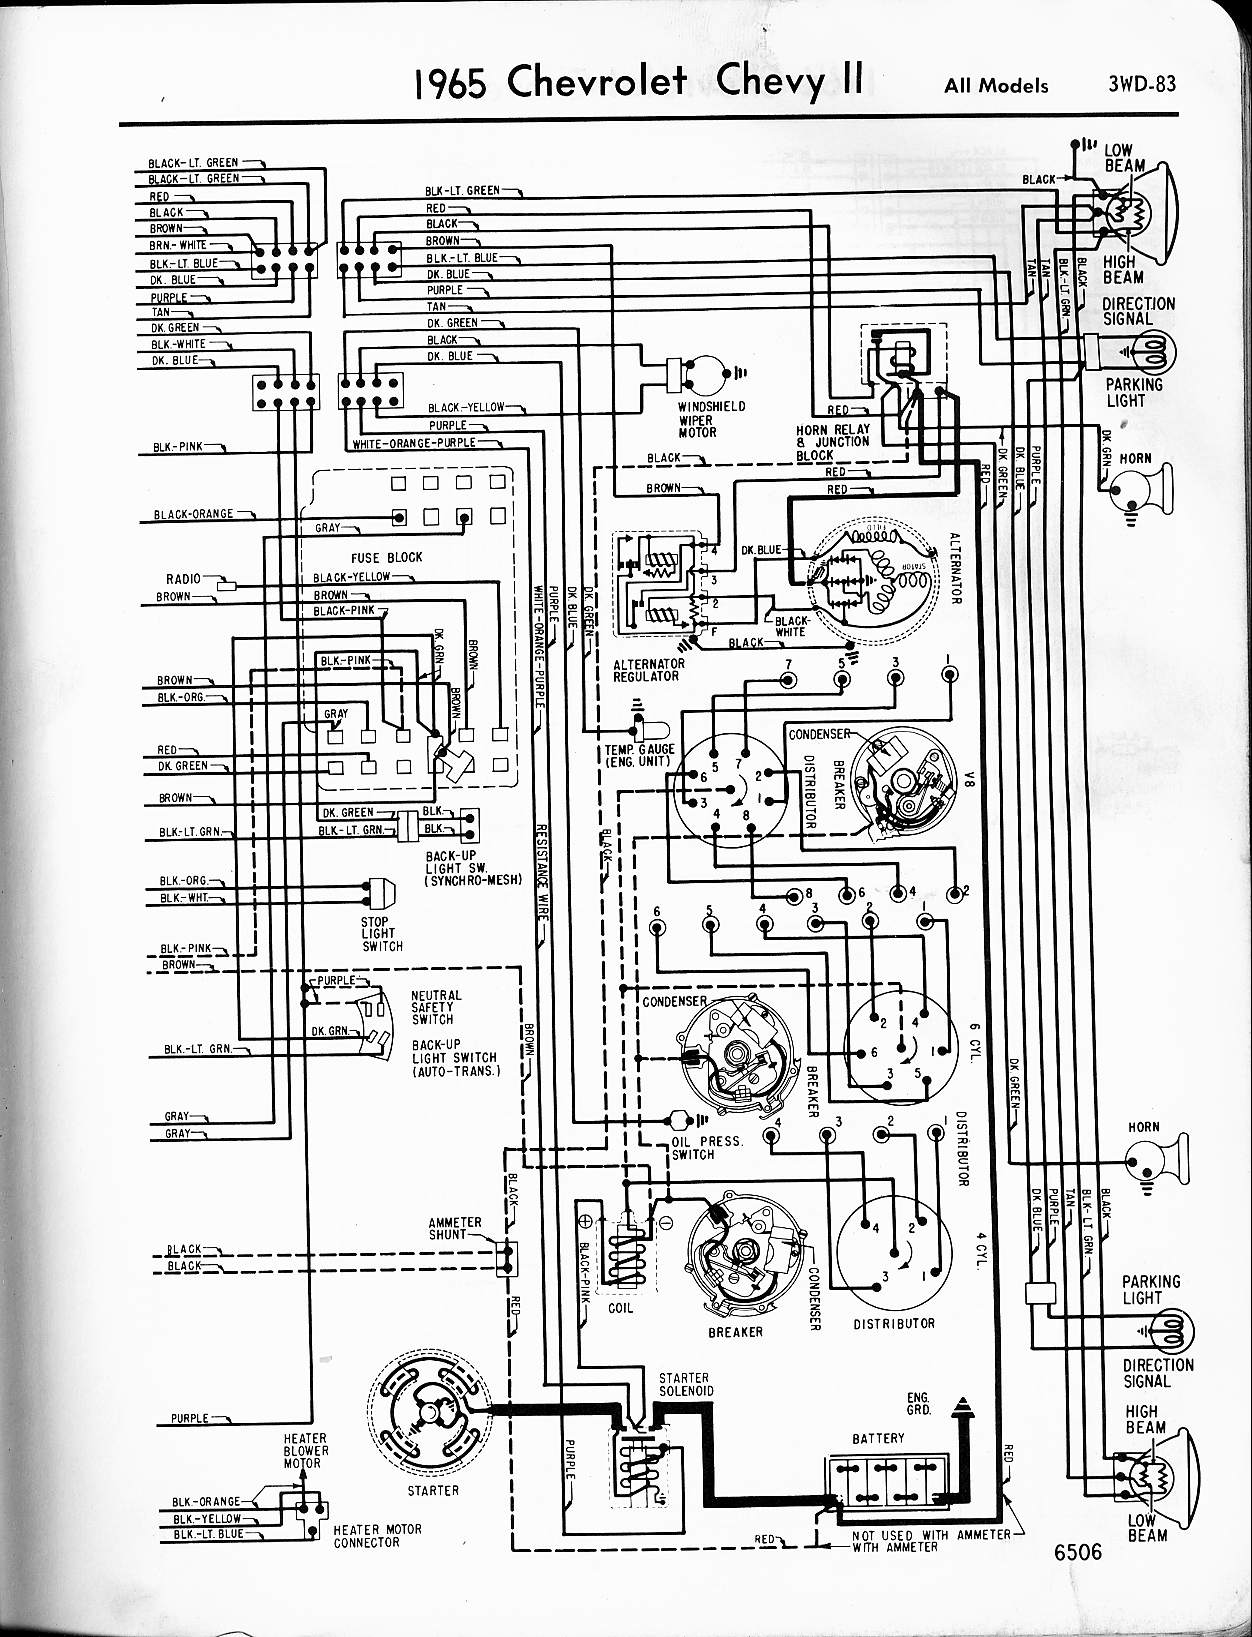 Chevy Diagrams on malibu timer, malibu ignition diagram, malibu engine diagram, malibu transmission diagram, malibu lighting diagram, malibu accessories, malibu frame diagram, malibu parts diagram, malibu exhaust diagram, malibu wheels, malibu suspension diagram,